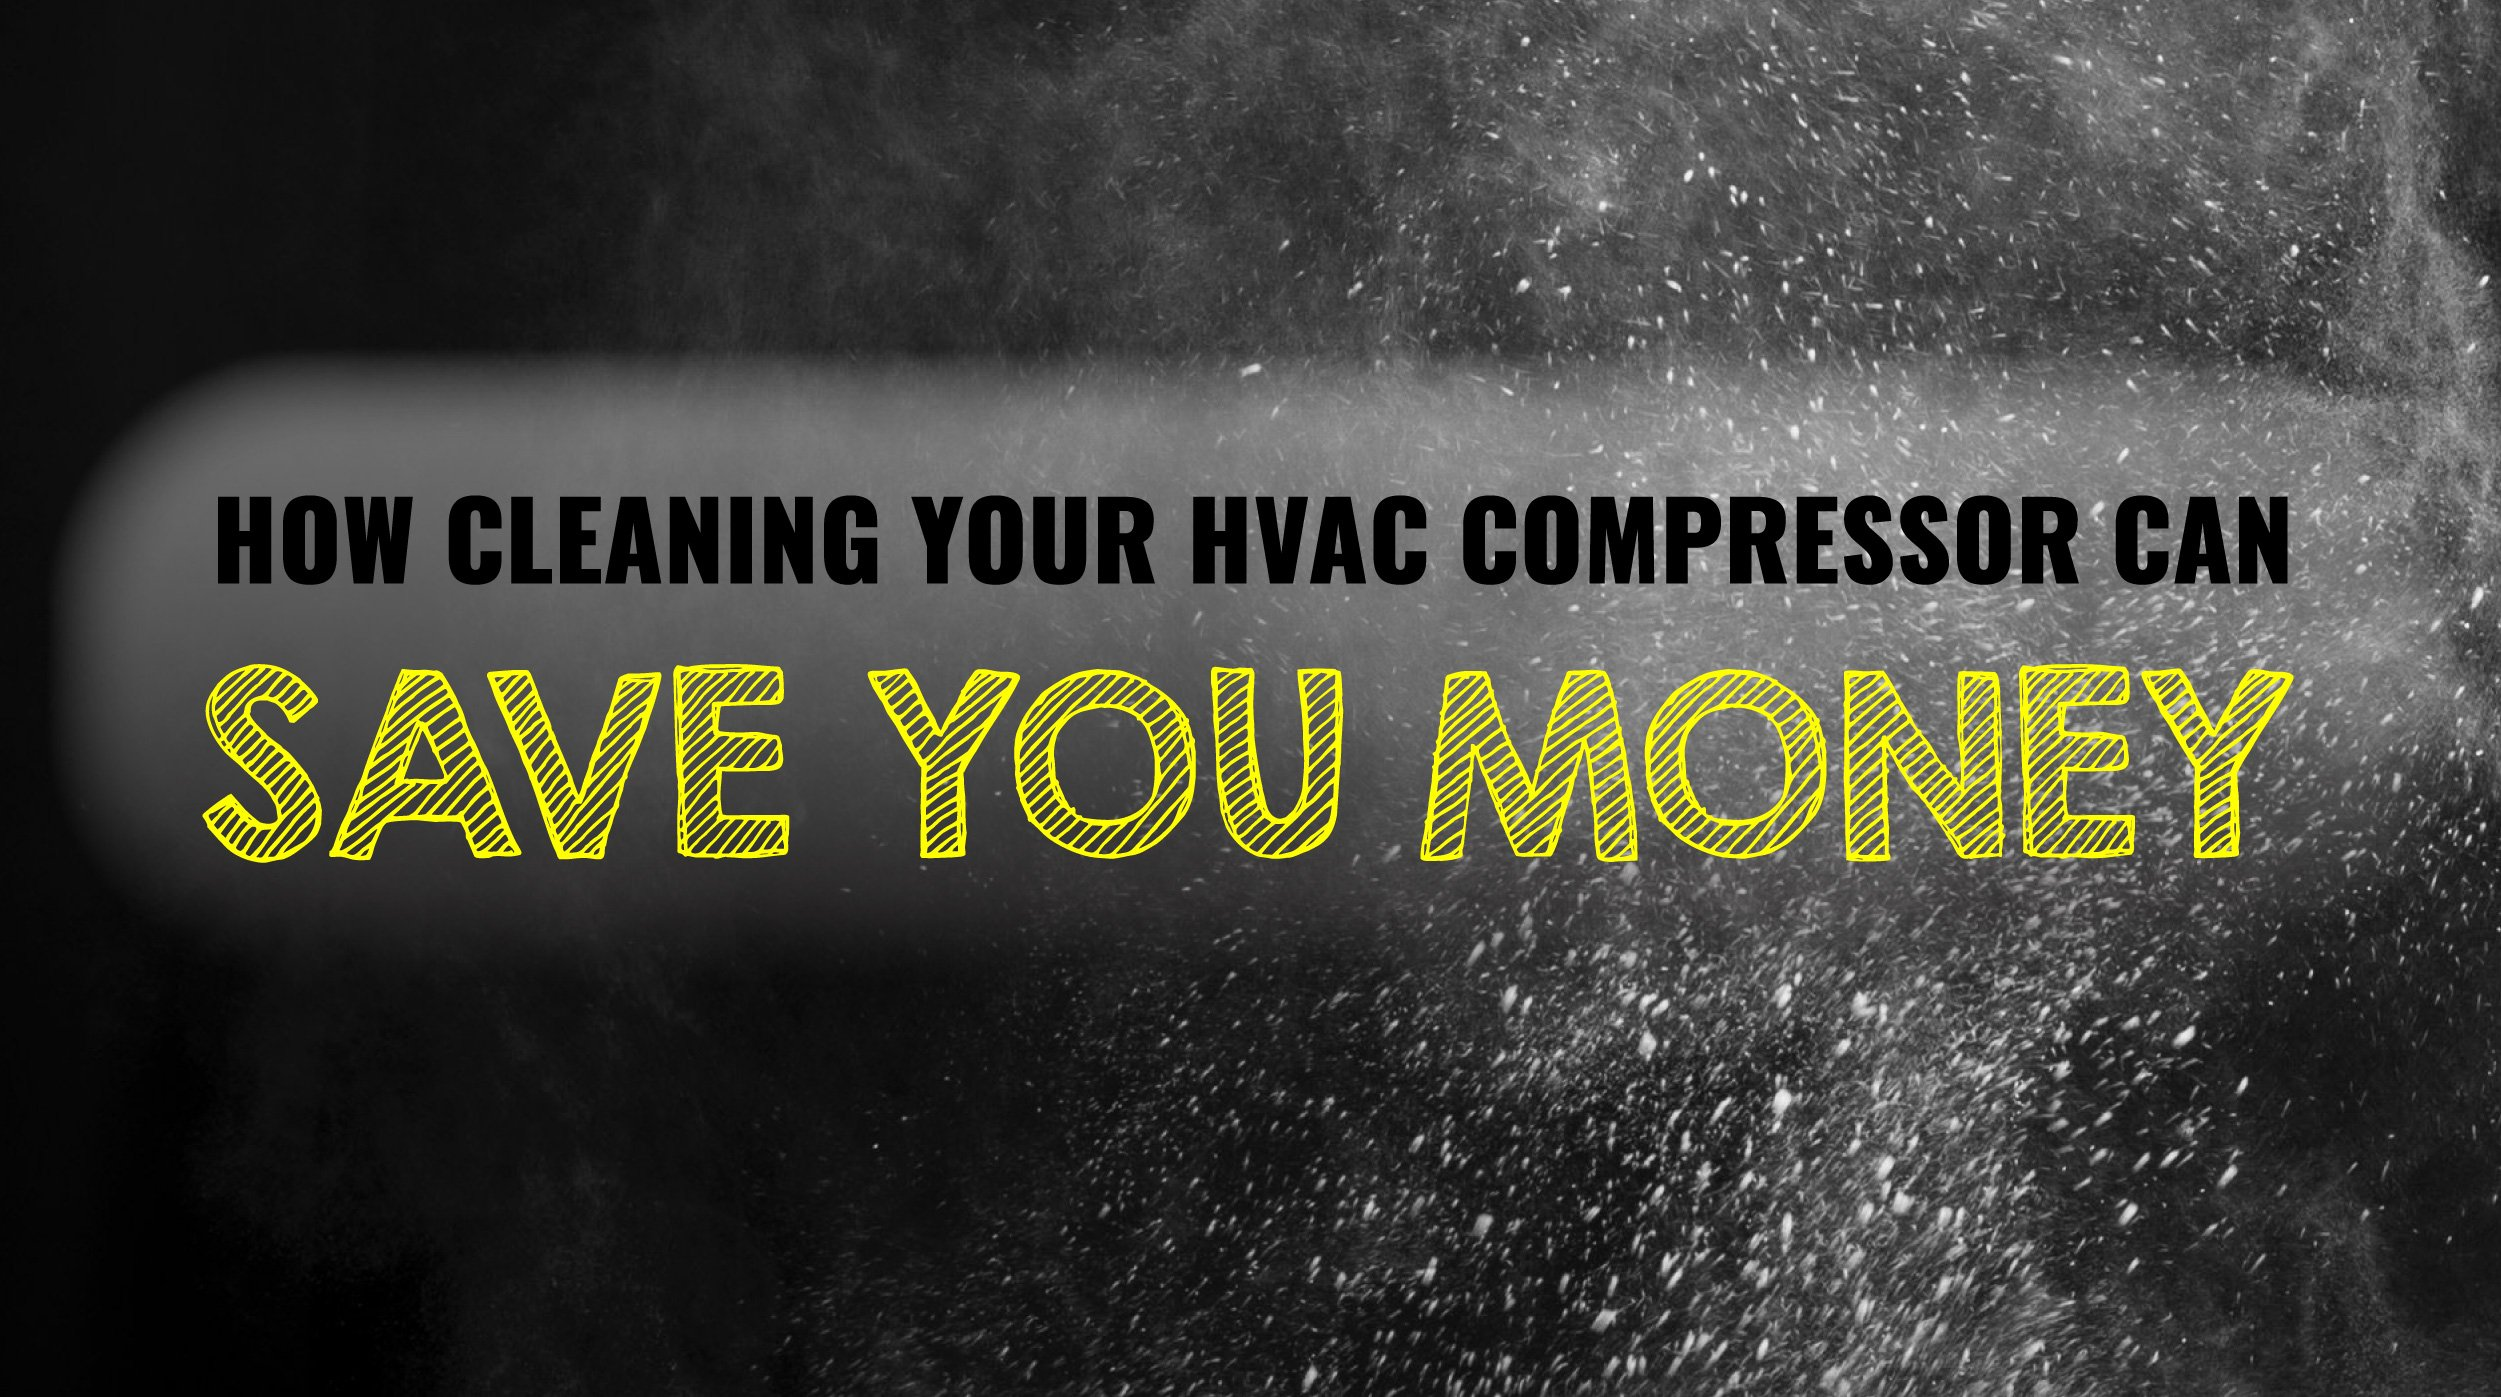 Cleaning Your HVAC Compressor Can Save You Money